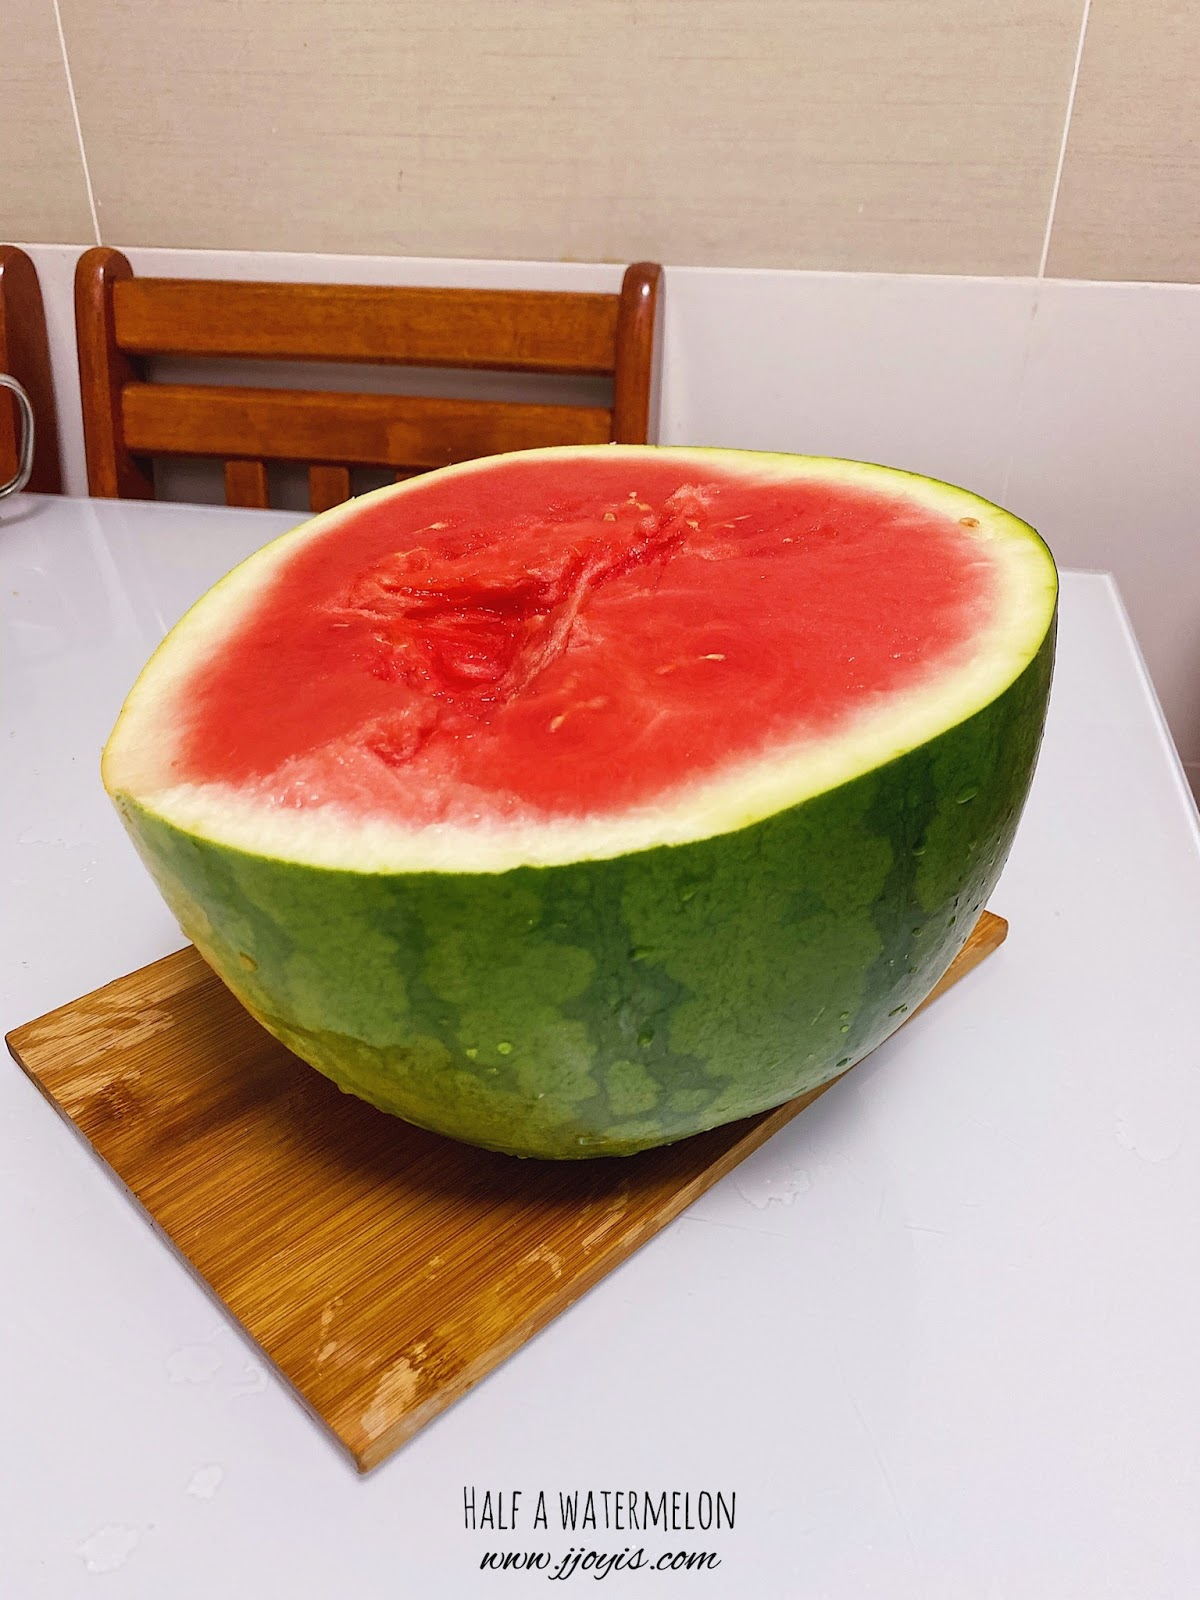 half watermelon, homemade, watermelon soju, unflavoured soju, watermelon vodka, easy recipe, subak soju, subak-soju, watermelon bowl